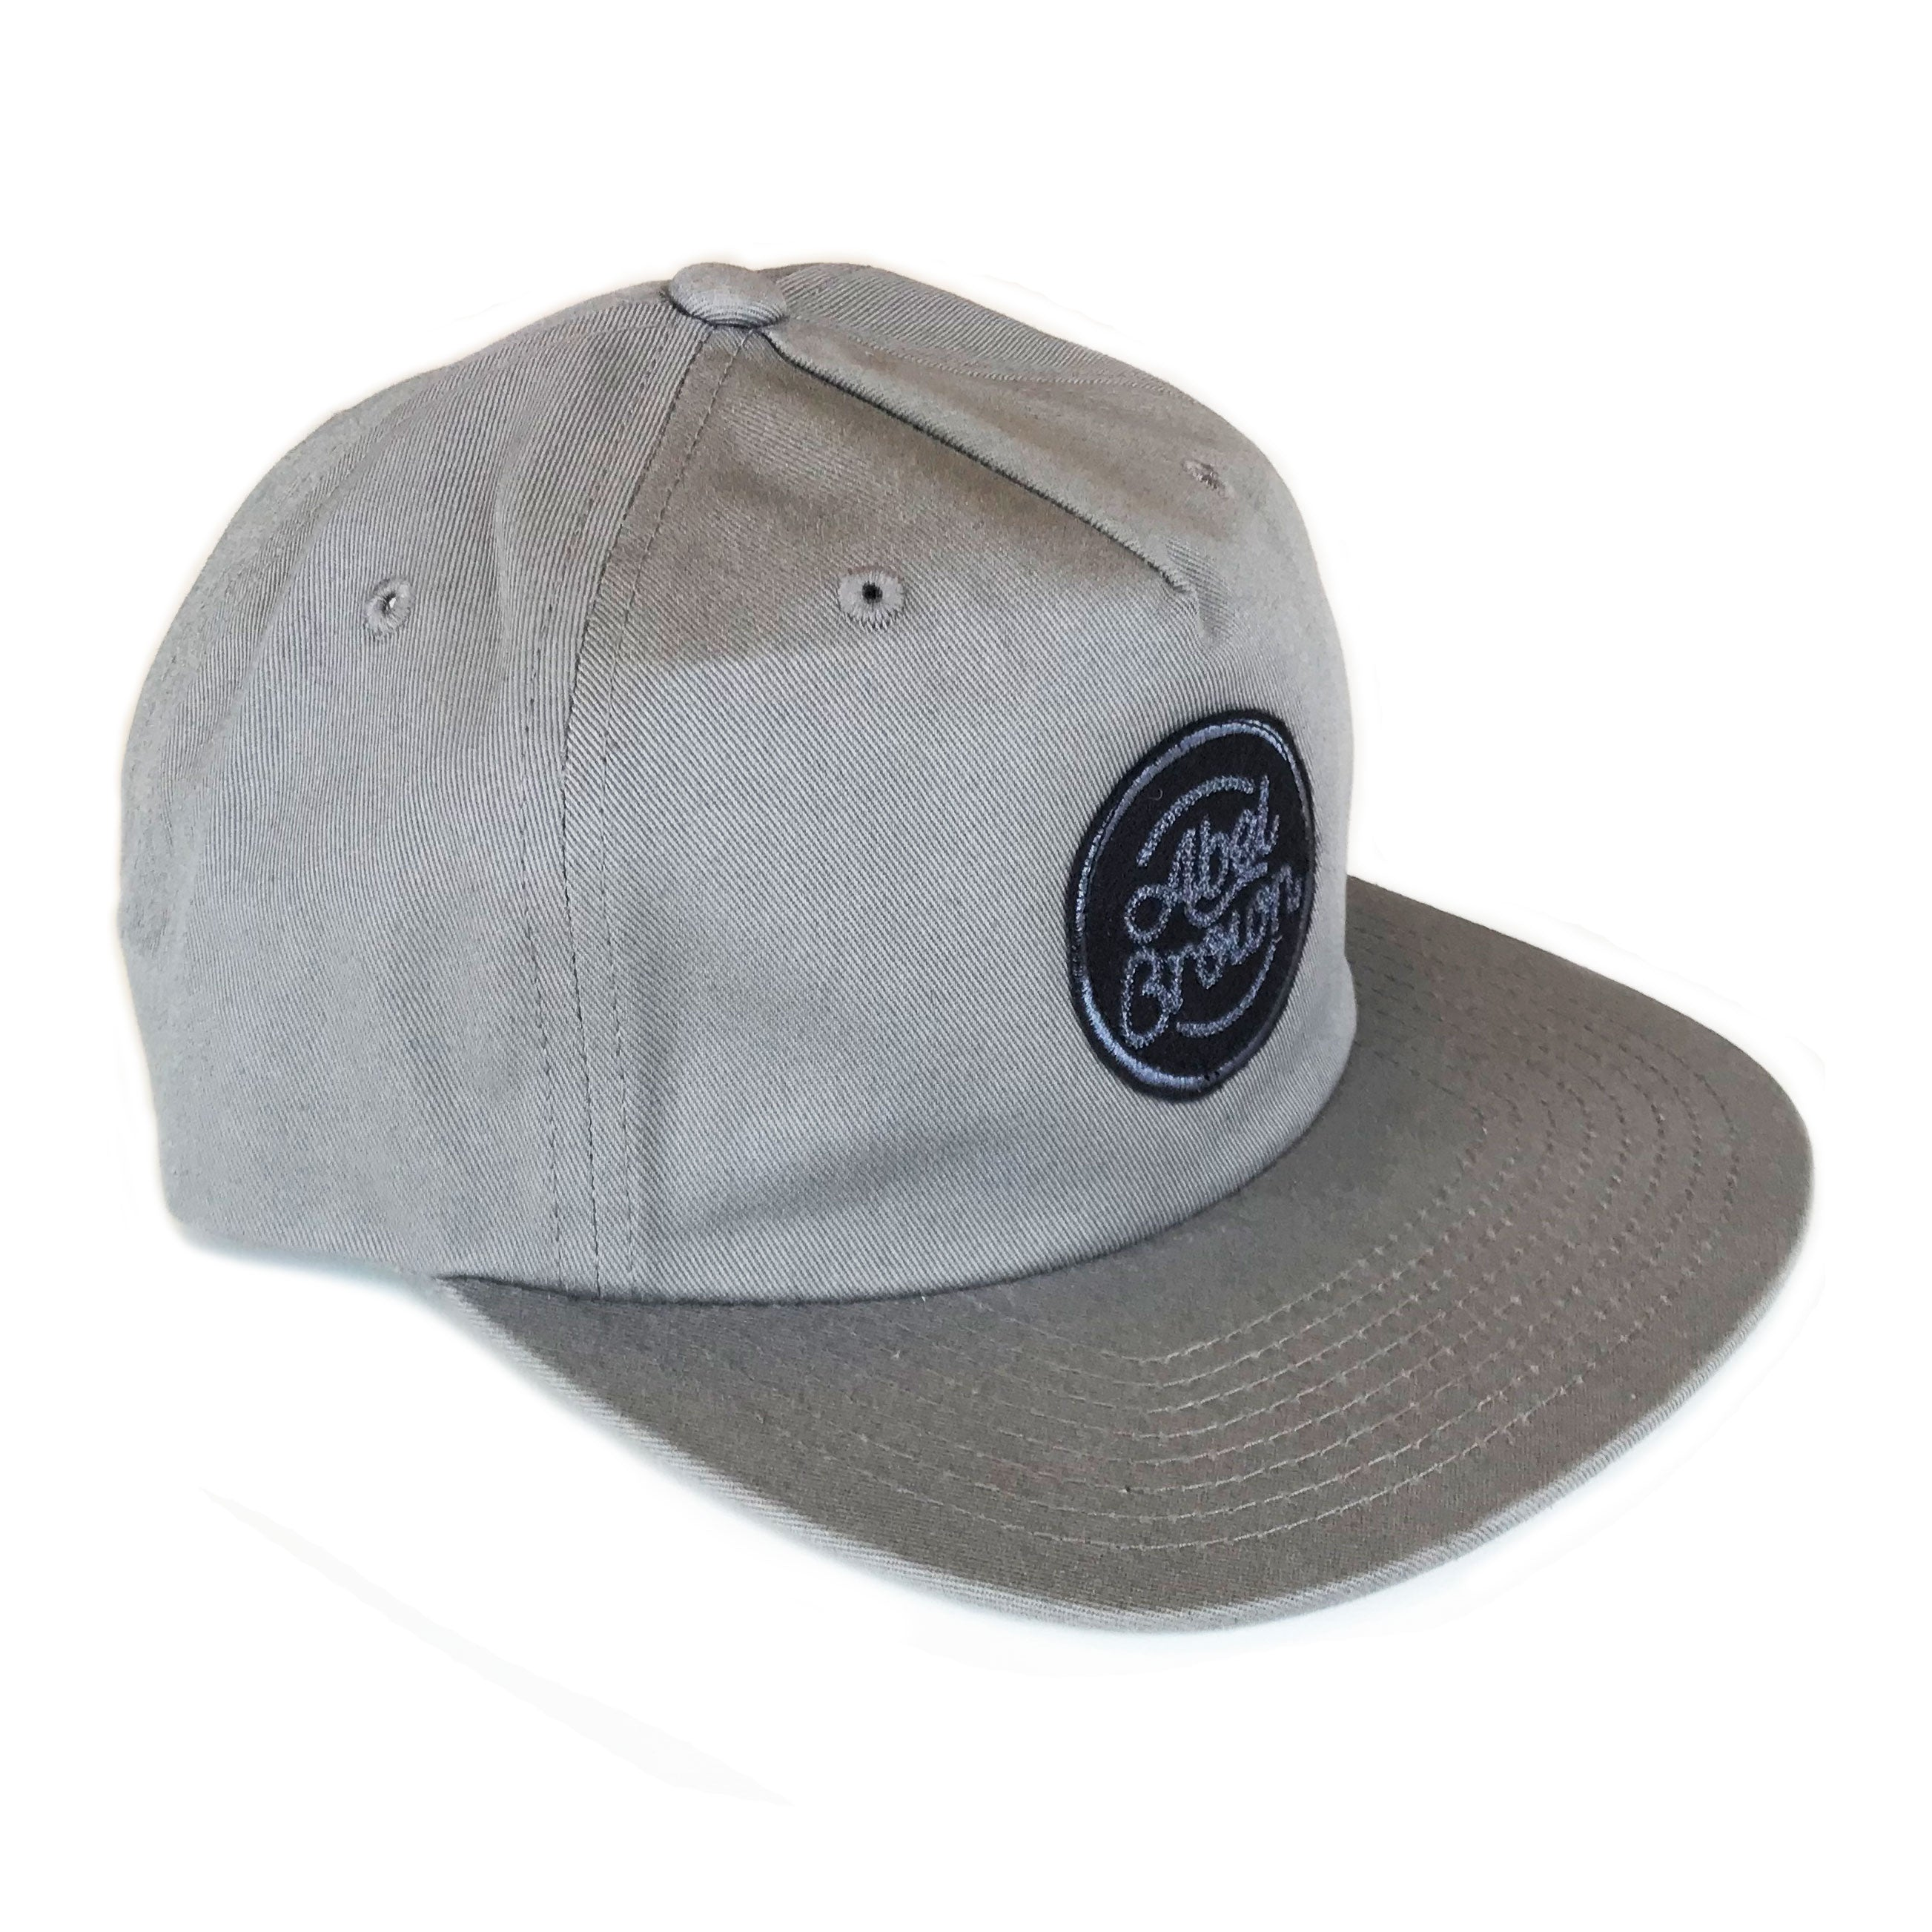 Chainstitch Hat - Grey